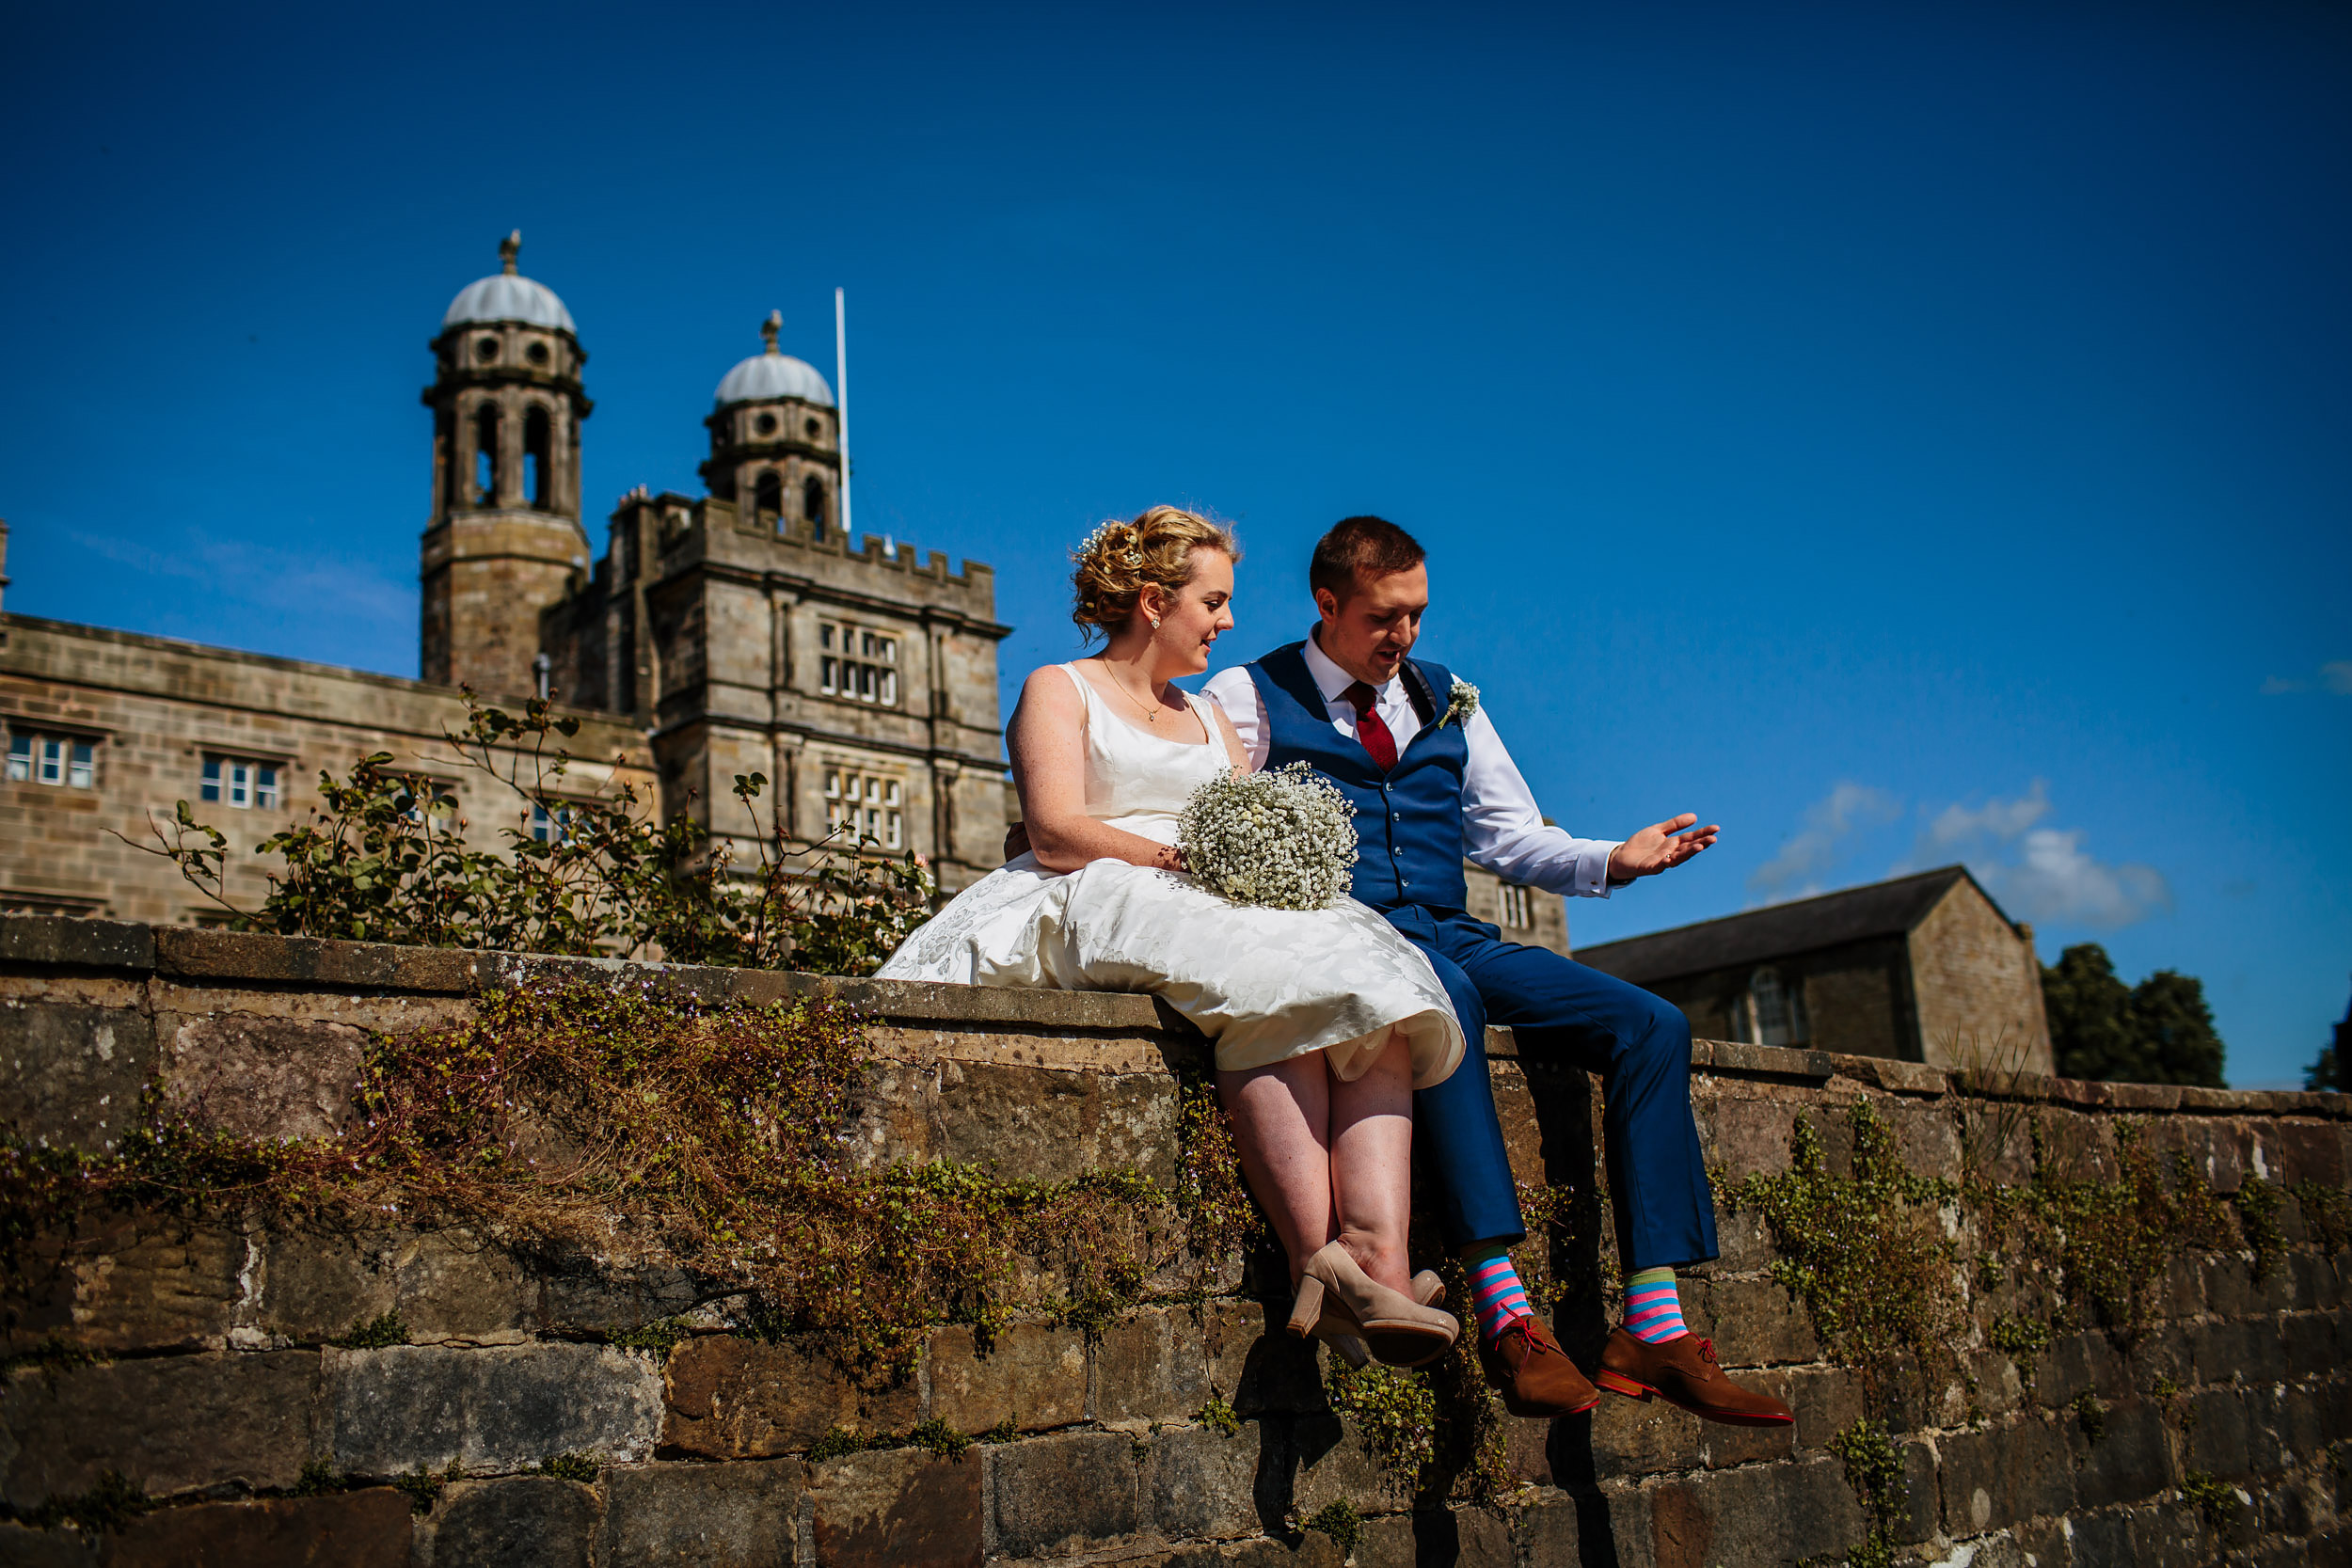 Bride and groom sitting on a wall at Stonyhurst College